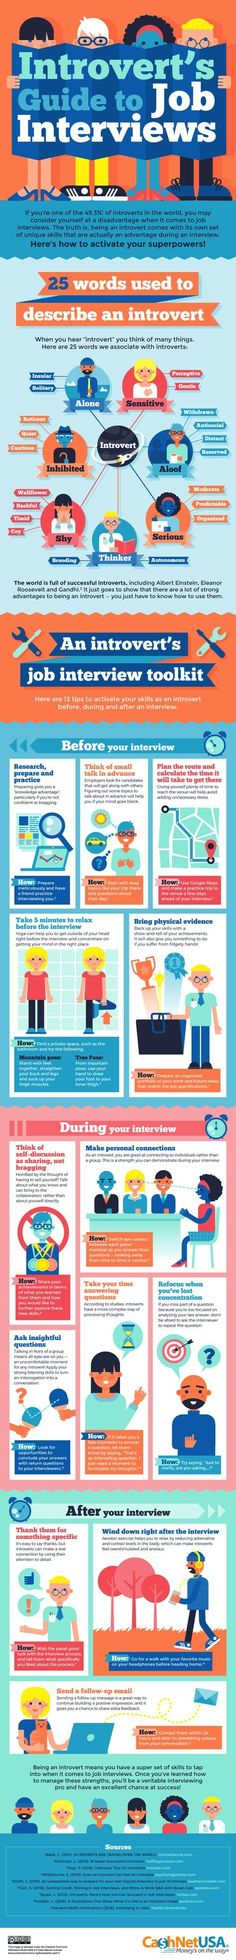 Introvert's Guide to Job Interviews (Infographic) Here's how introverts can use their special skills to excel at a job interview.Here's how introverts can use their special skills to excel at a job interview. Interview Skills, Job Interview Questions, Job Interview Tips, Job Interviews, Interview Techniques, Interview Preparation, Job Resume, Resume Tips, Job Cv